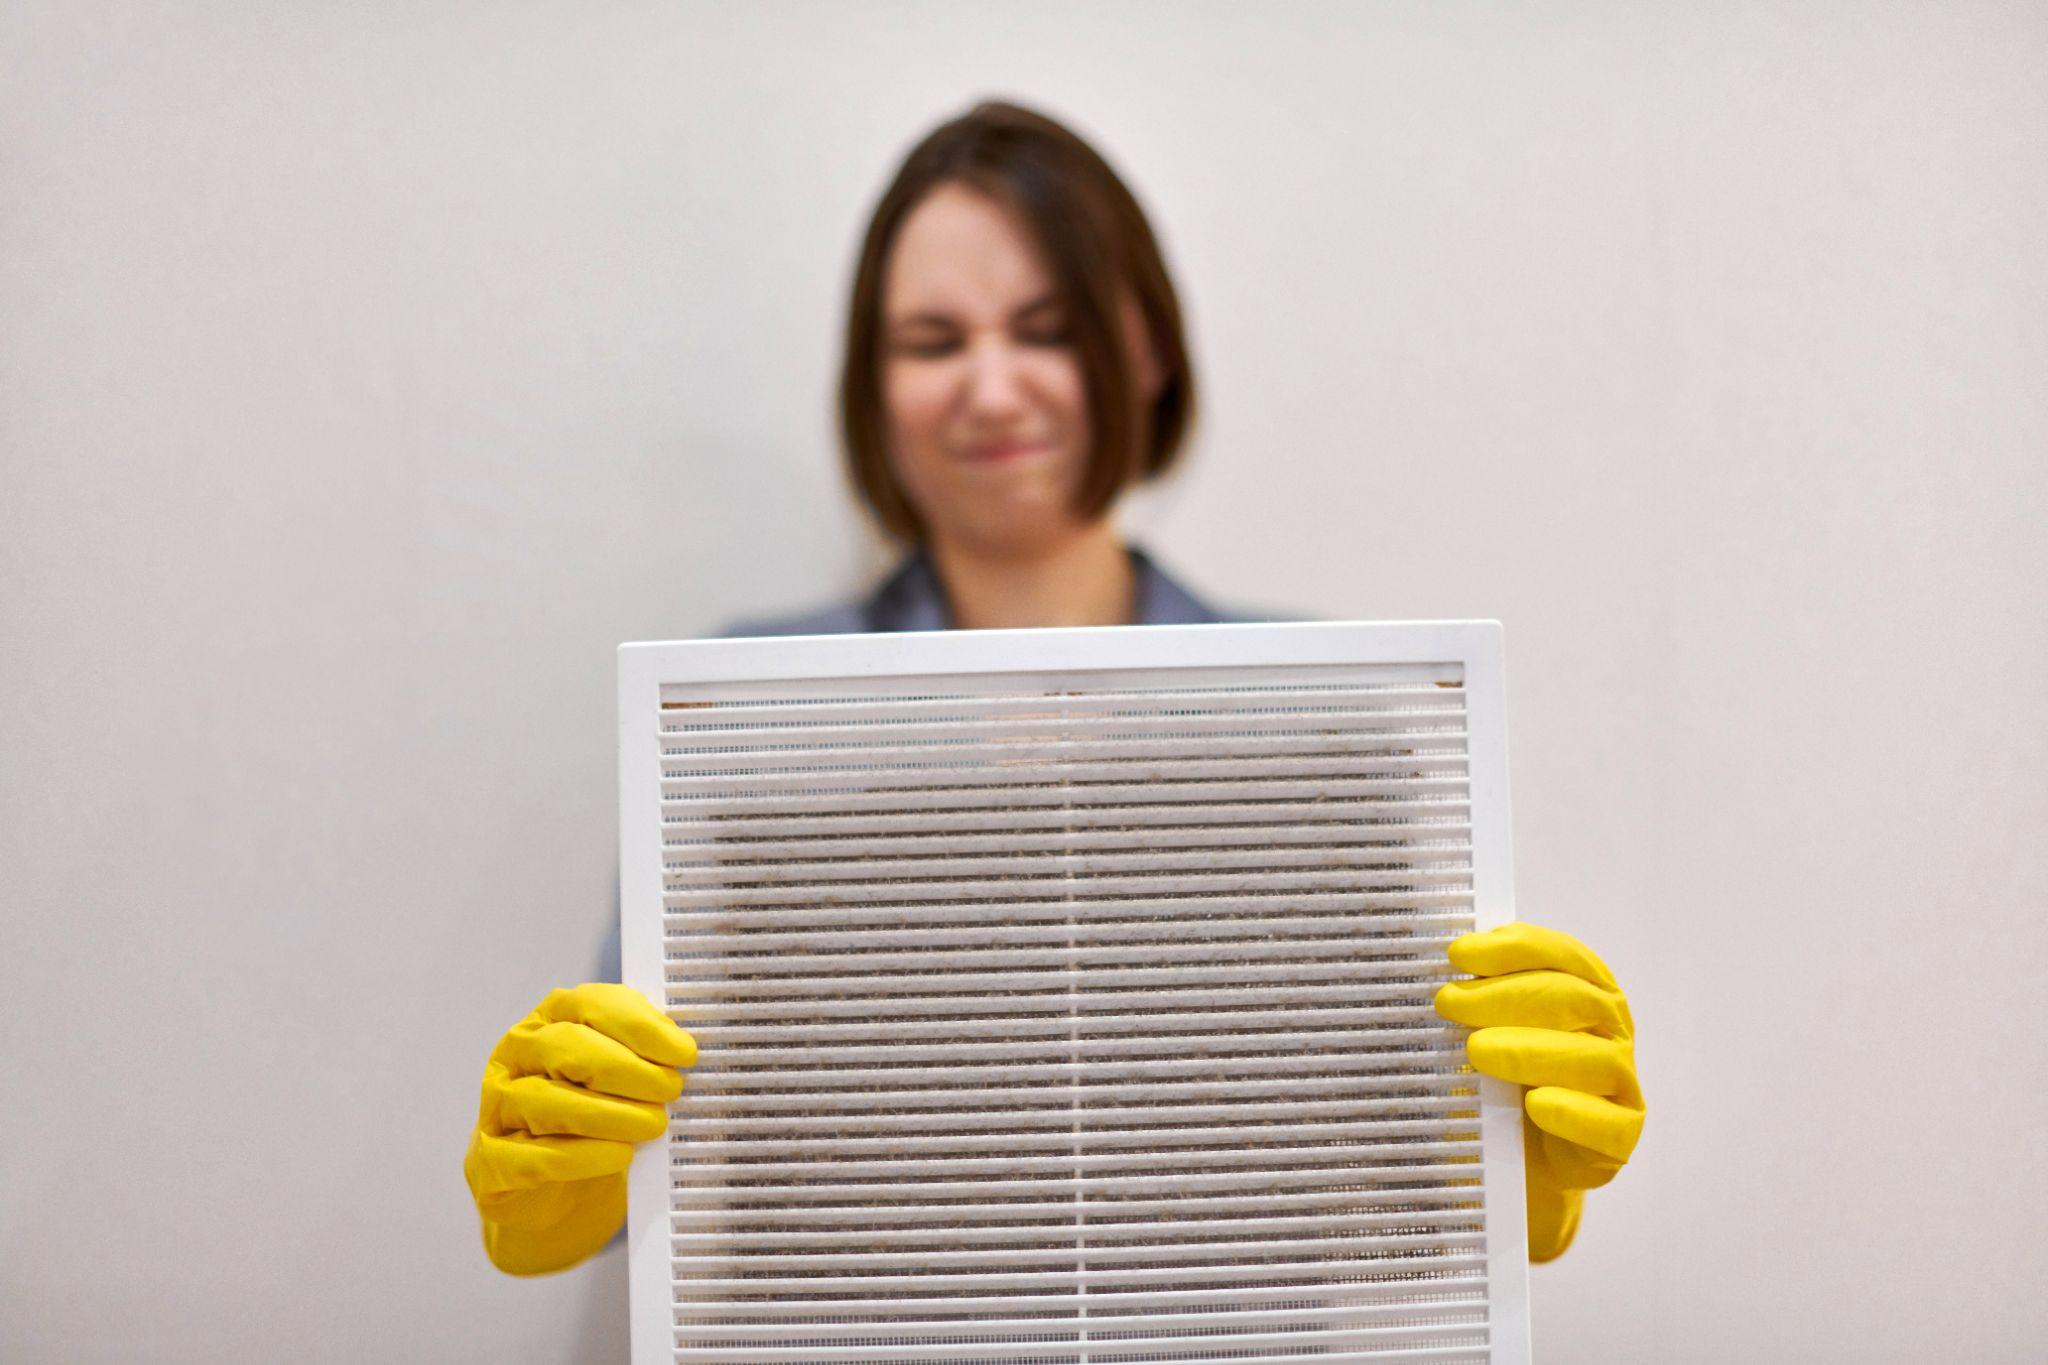 Woman holds ventilation grill with dust filter to clean it